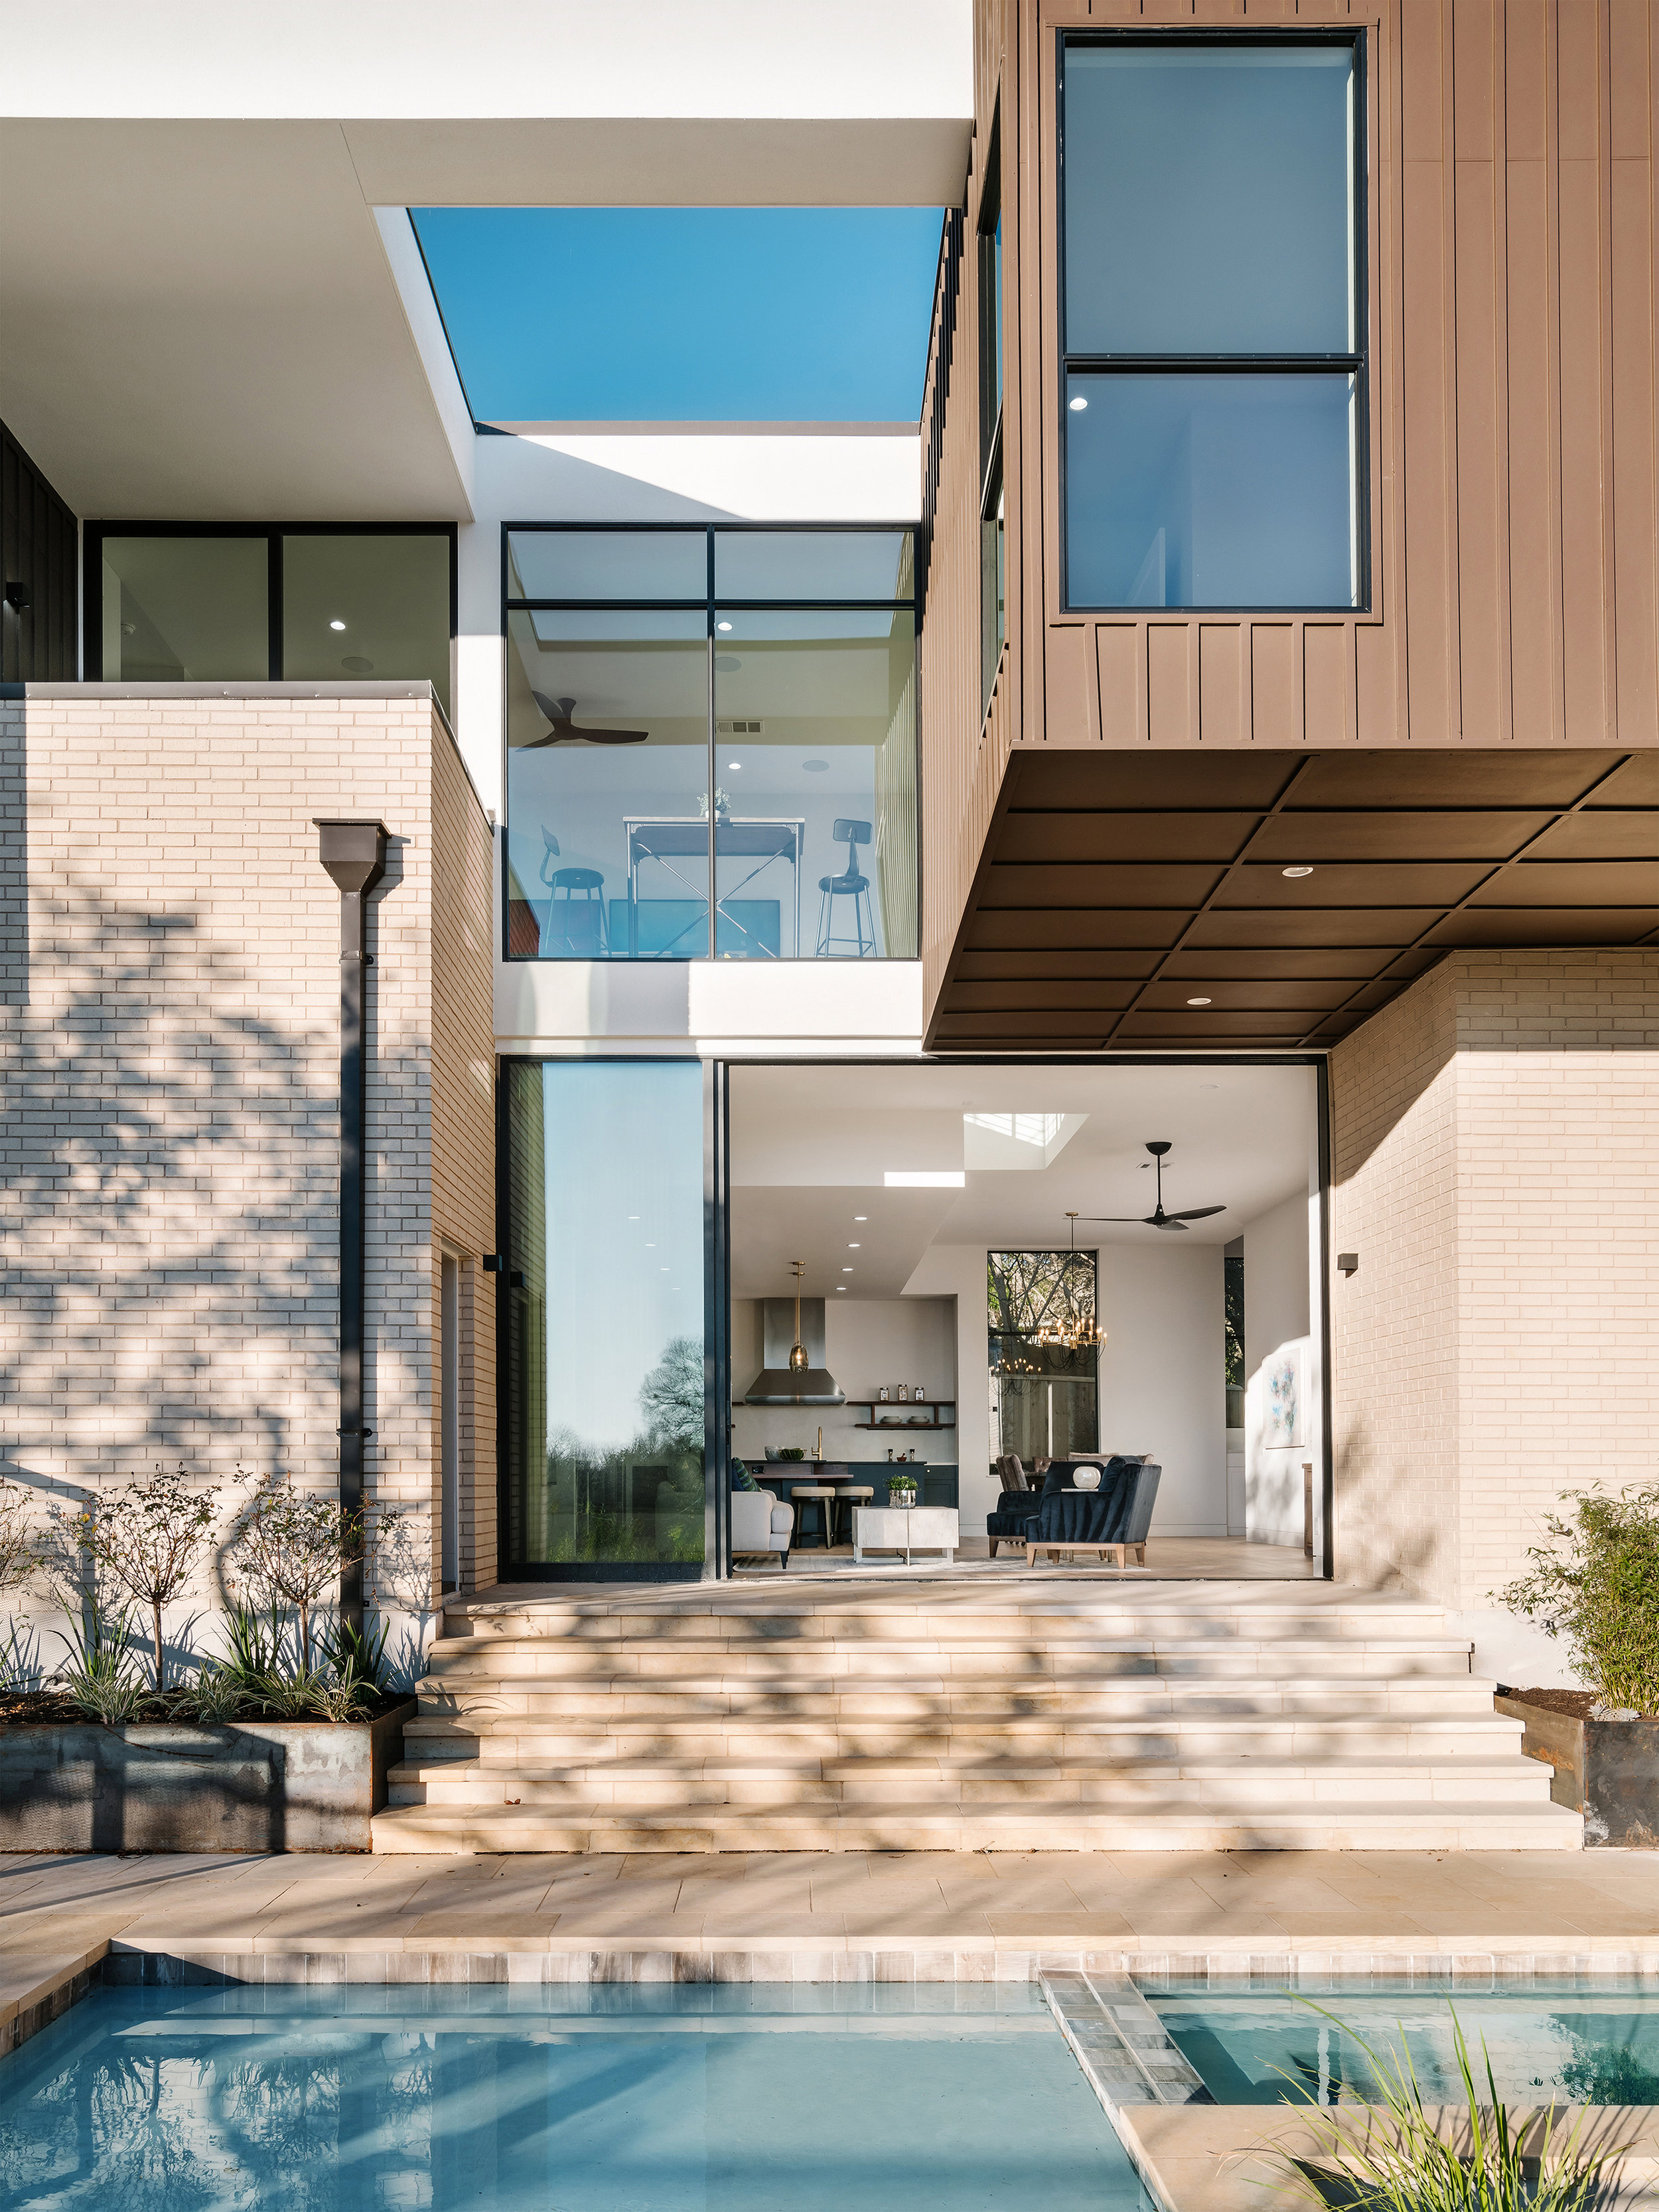 9 Allotted Space House by Matt Fajkus Architecture. Photo by Chase Daniel.jpg